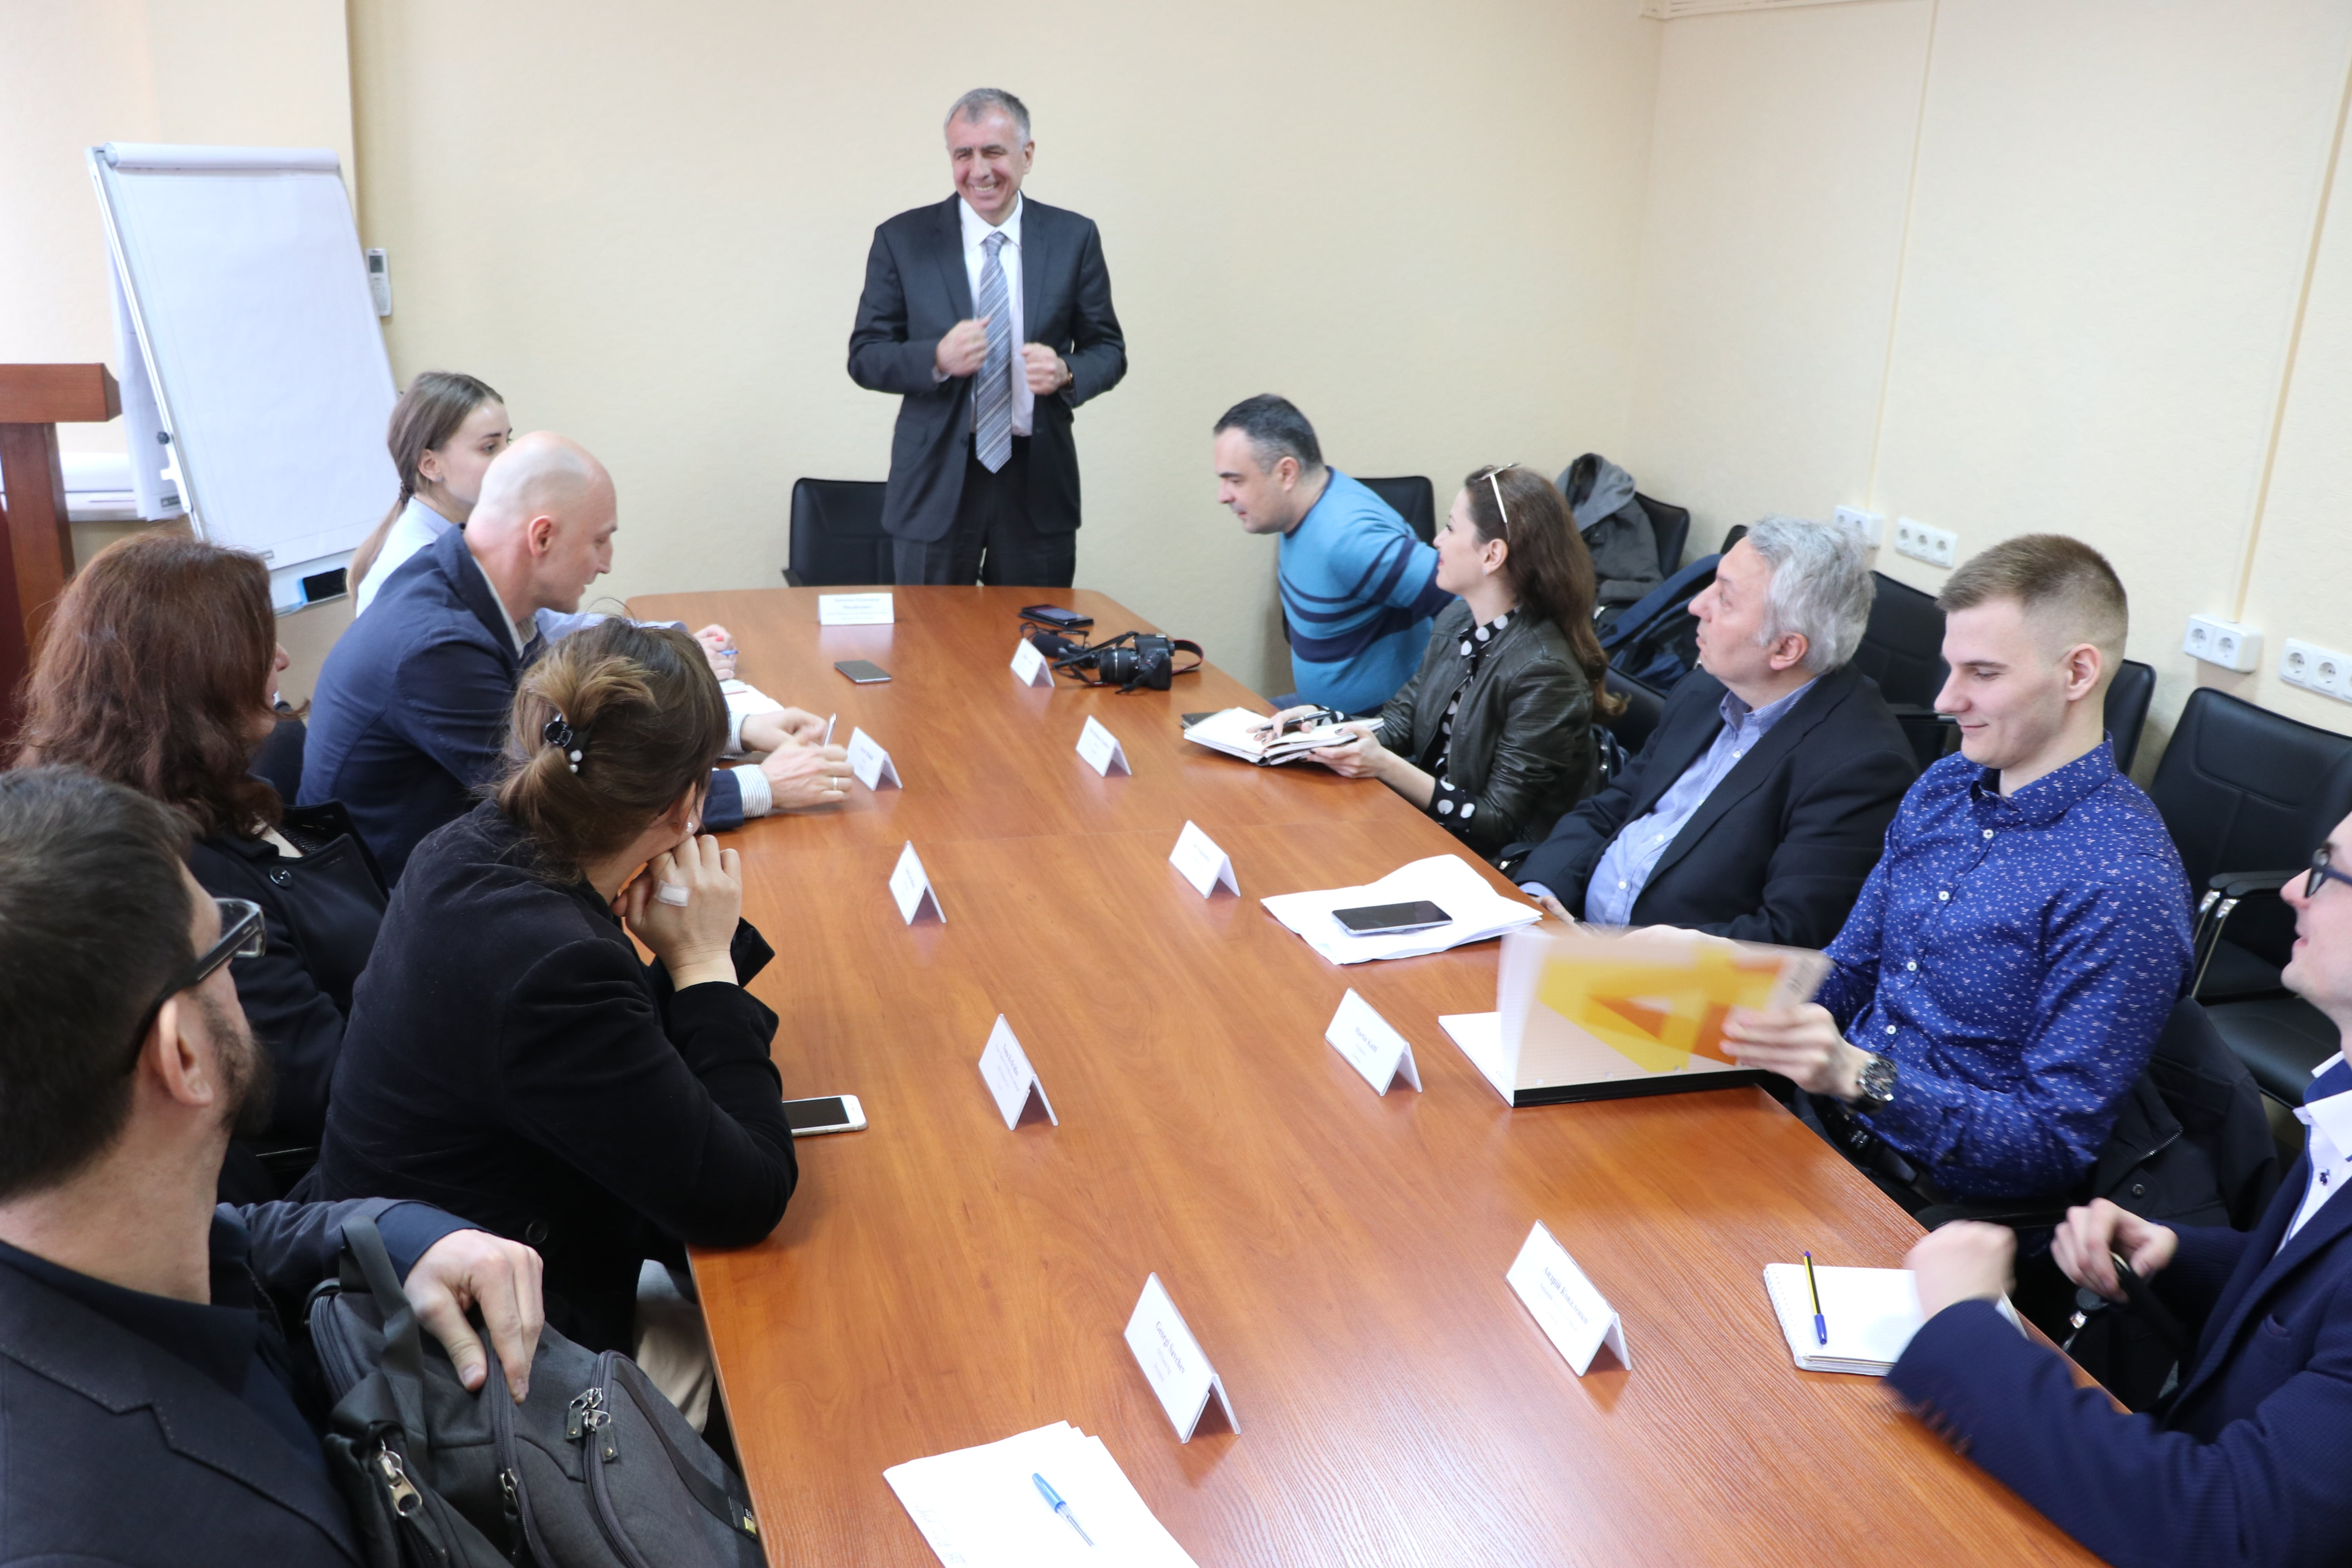 VISIT TO UKRAINE AFTER THE PRESIDENTIAL ELECTIONS: THE 7TH INTERNATIONAL PRESS TOUR